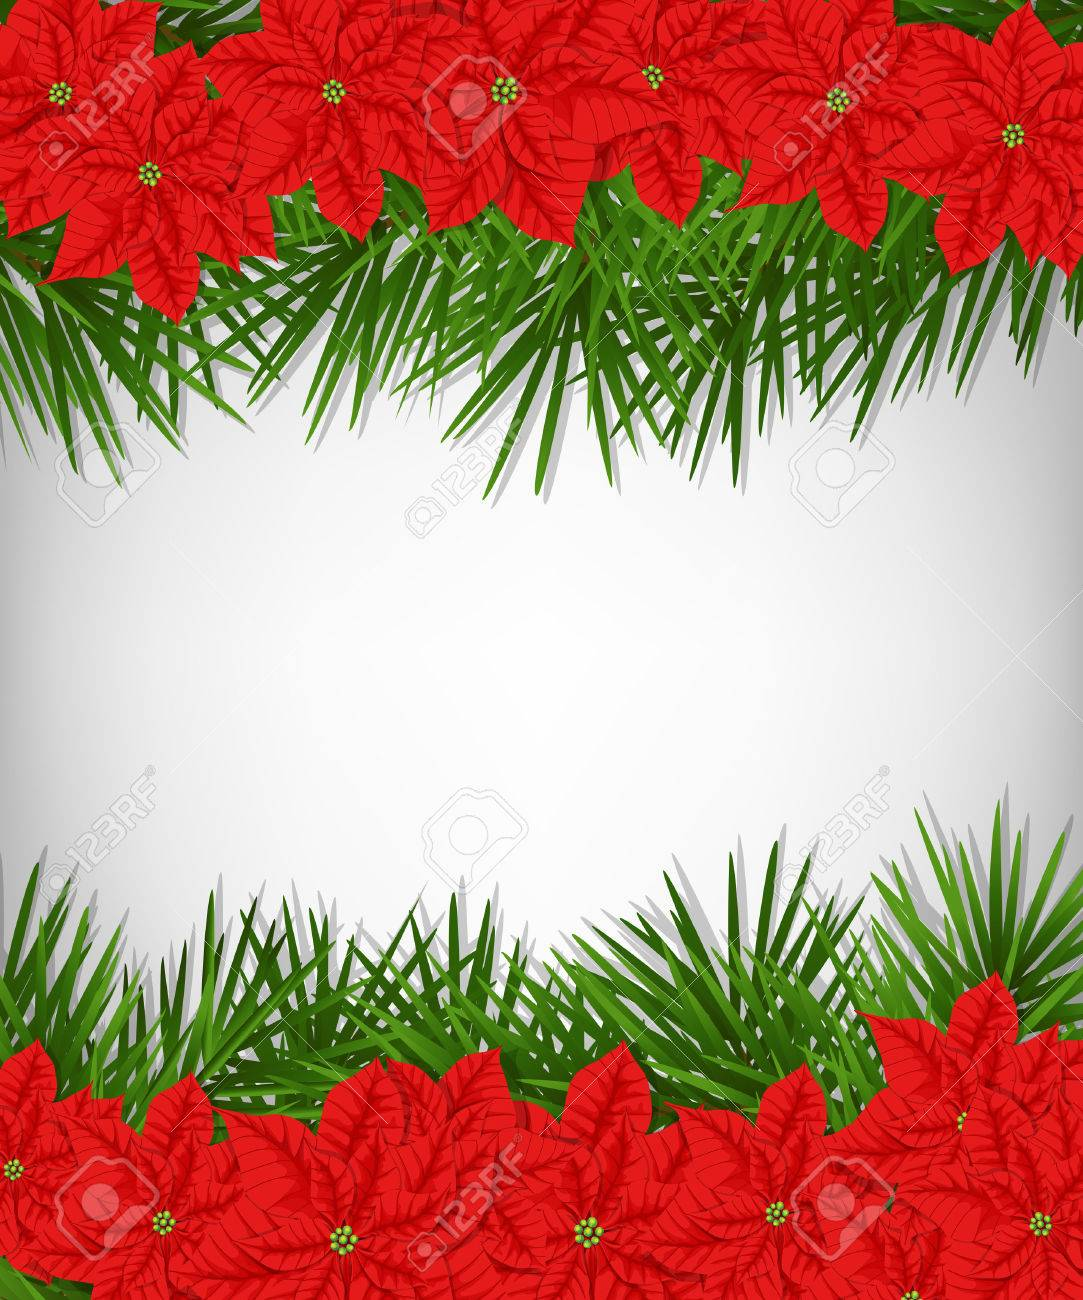 Christmas Card. Borders Made Of Poinsettia Flowers And Fir Branches ...